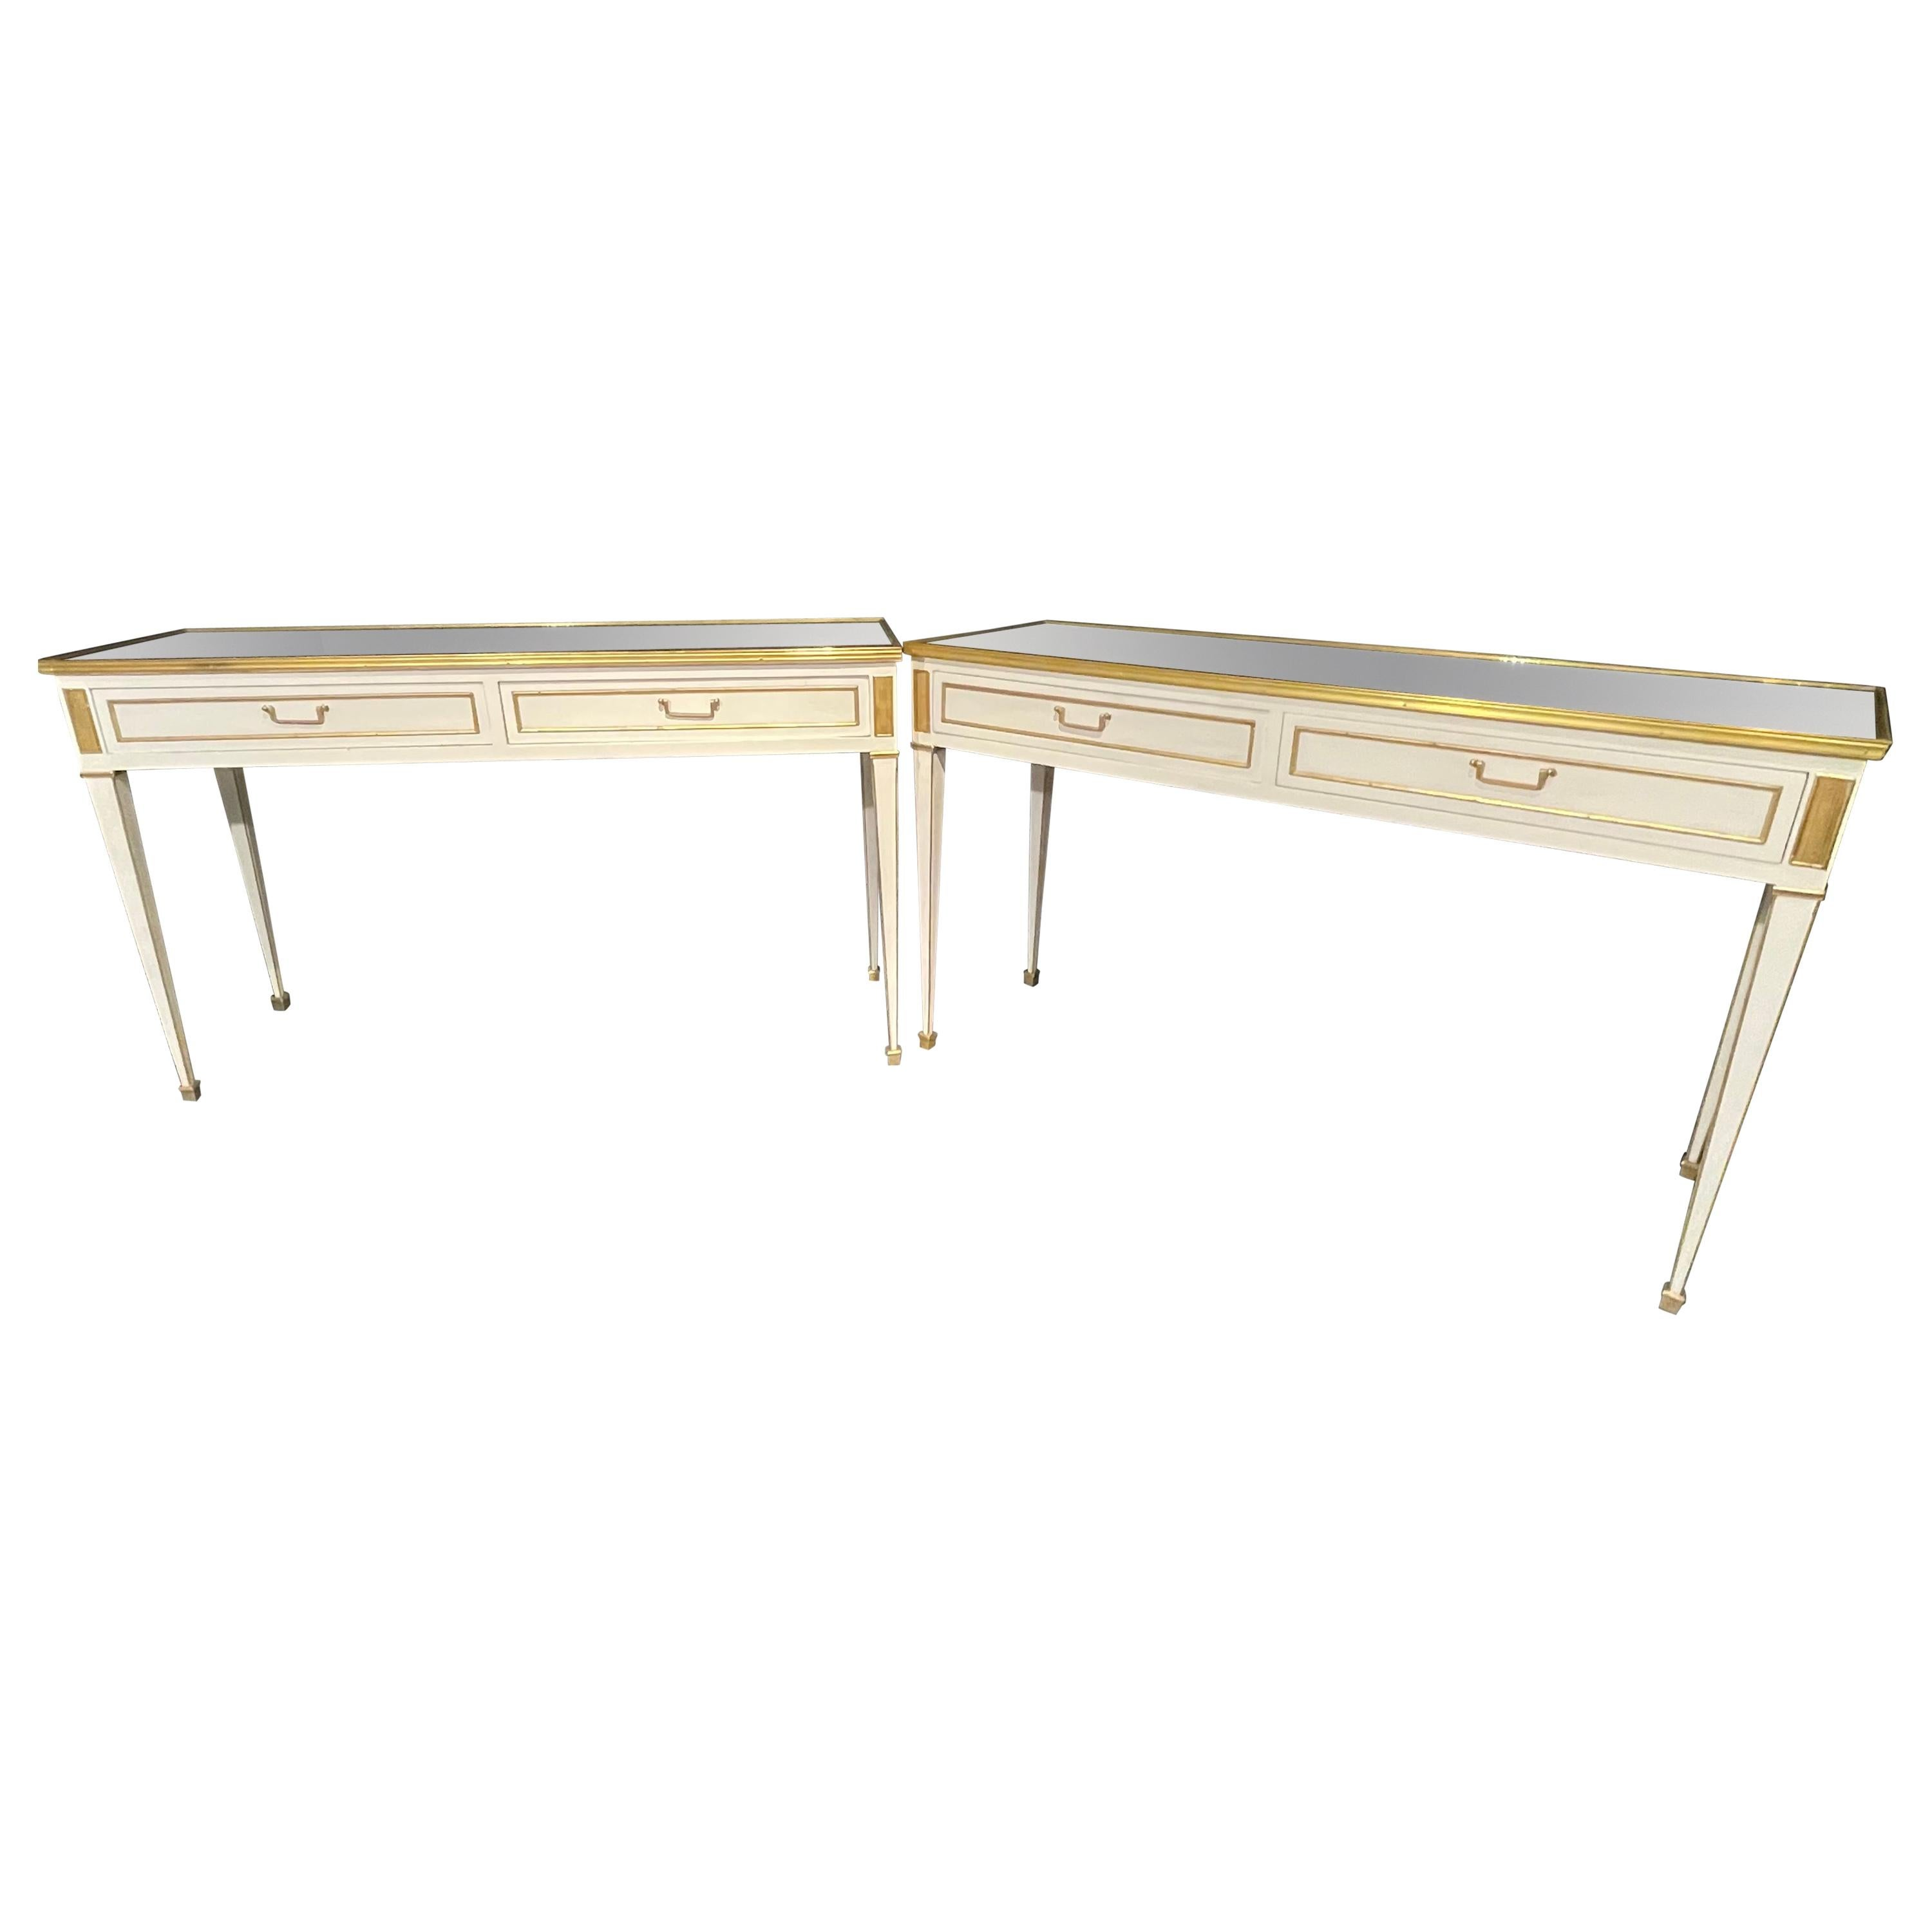 Pair of Jansen Hollywood Regency Style Console / Sofa Tables, Mirrored & Painted